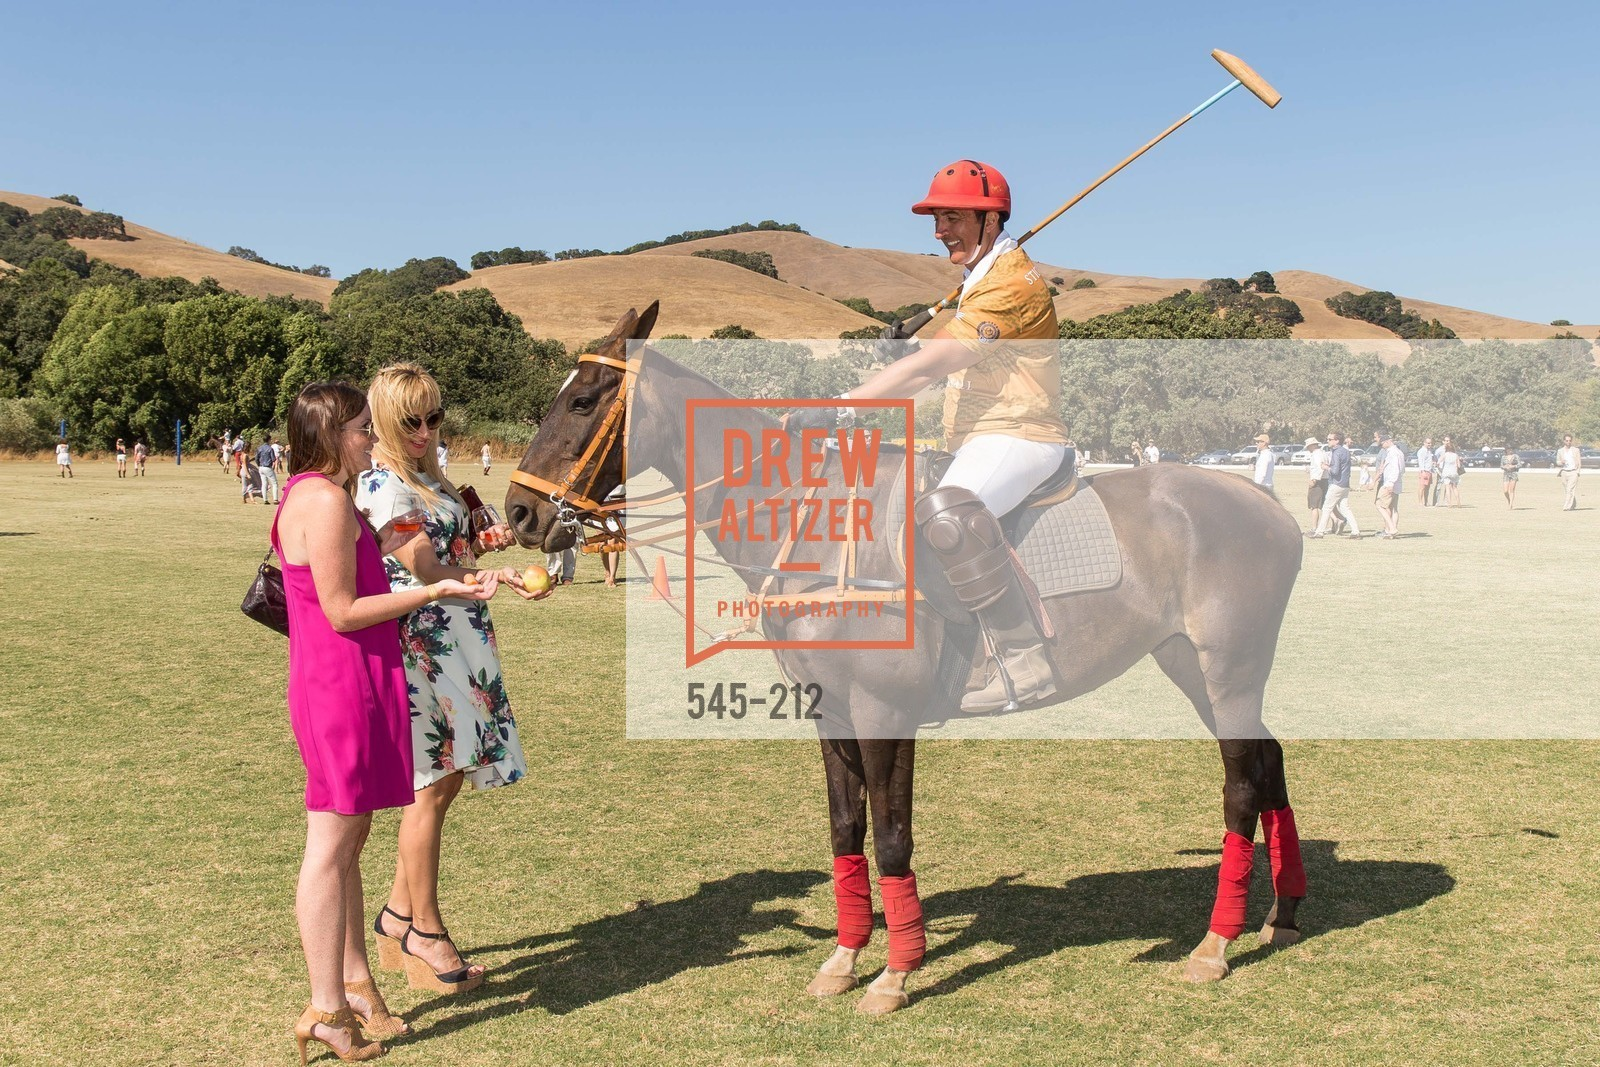 Alex McGowan, Teah Abbott, Stick & Ball Oyster Cup Polo Tournament, Cerro Pampa Polo Club, July 25th, 2015,Drew Altizer, Drew Altizer Photography, full-service agency, private events, San Francisco photographer, photographer california